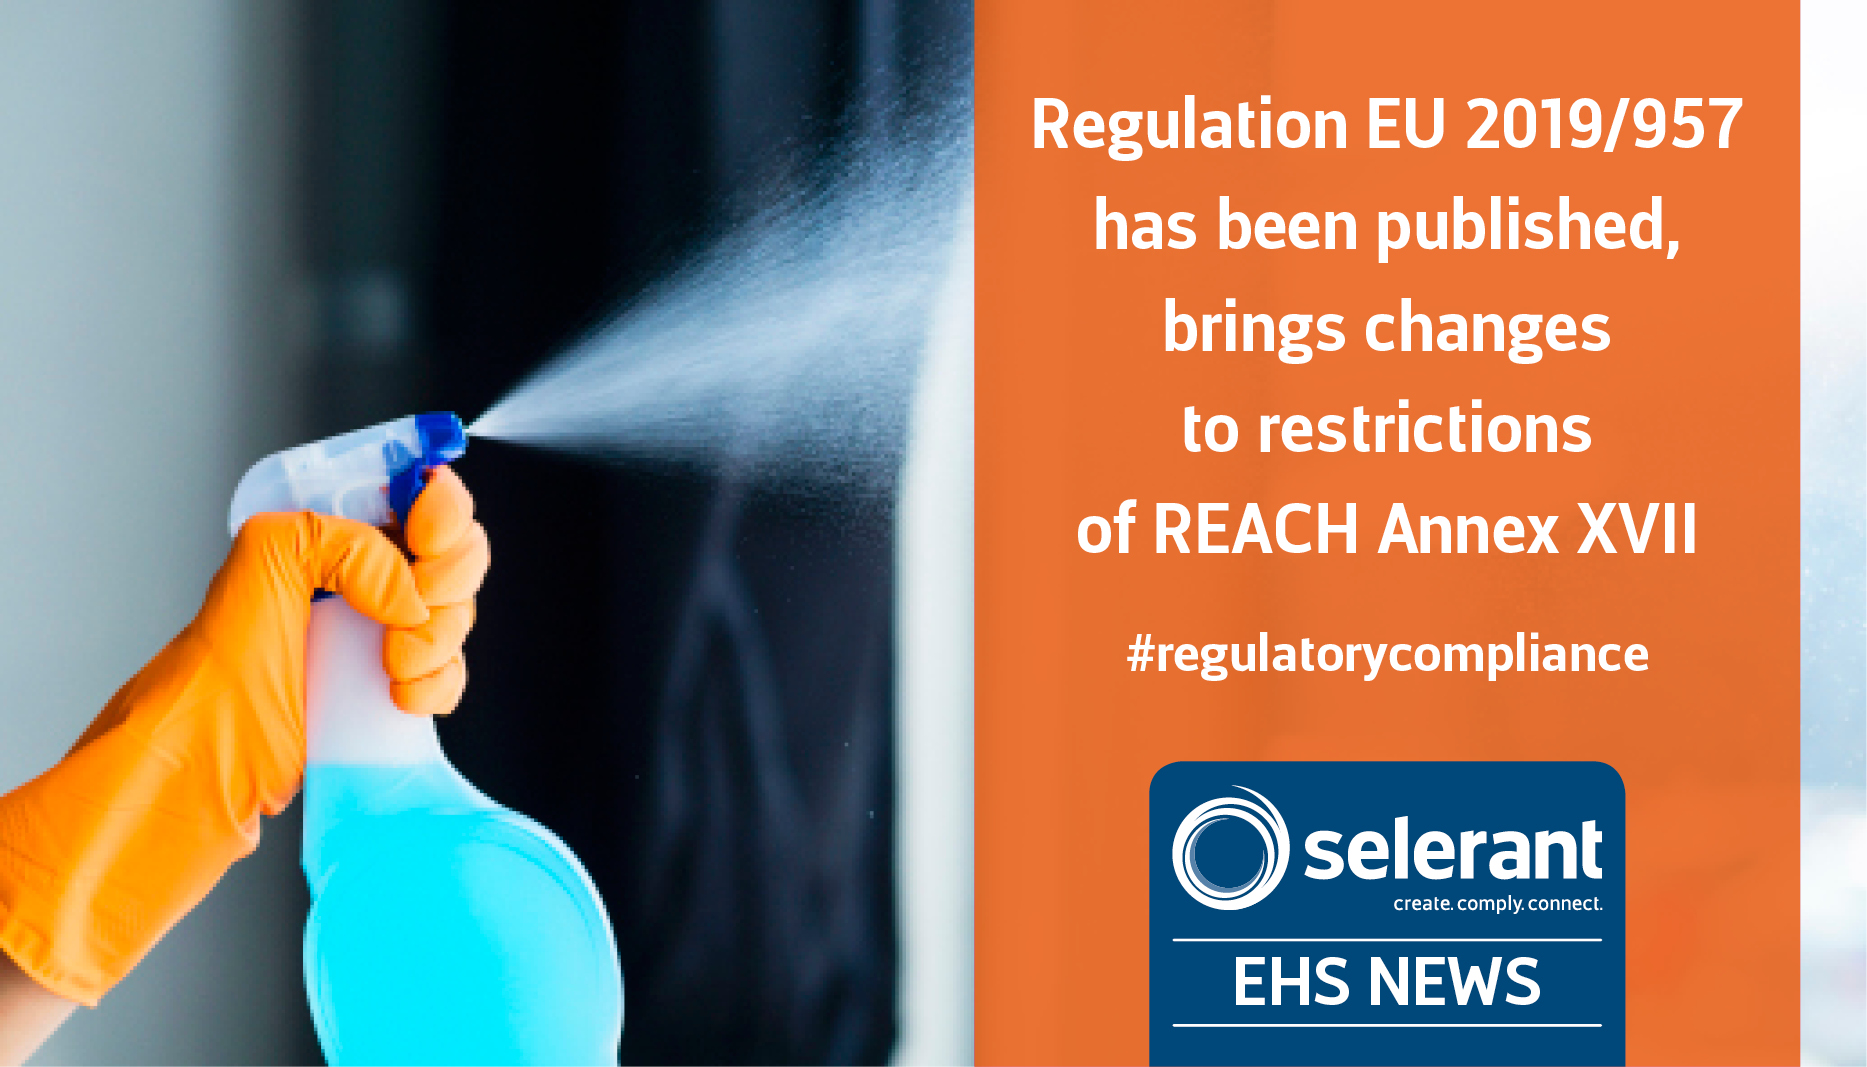 Regulation EU 2019/957 has been published, brings changes to restrictions of REACH Annex XVII